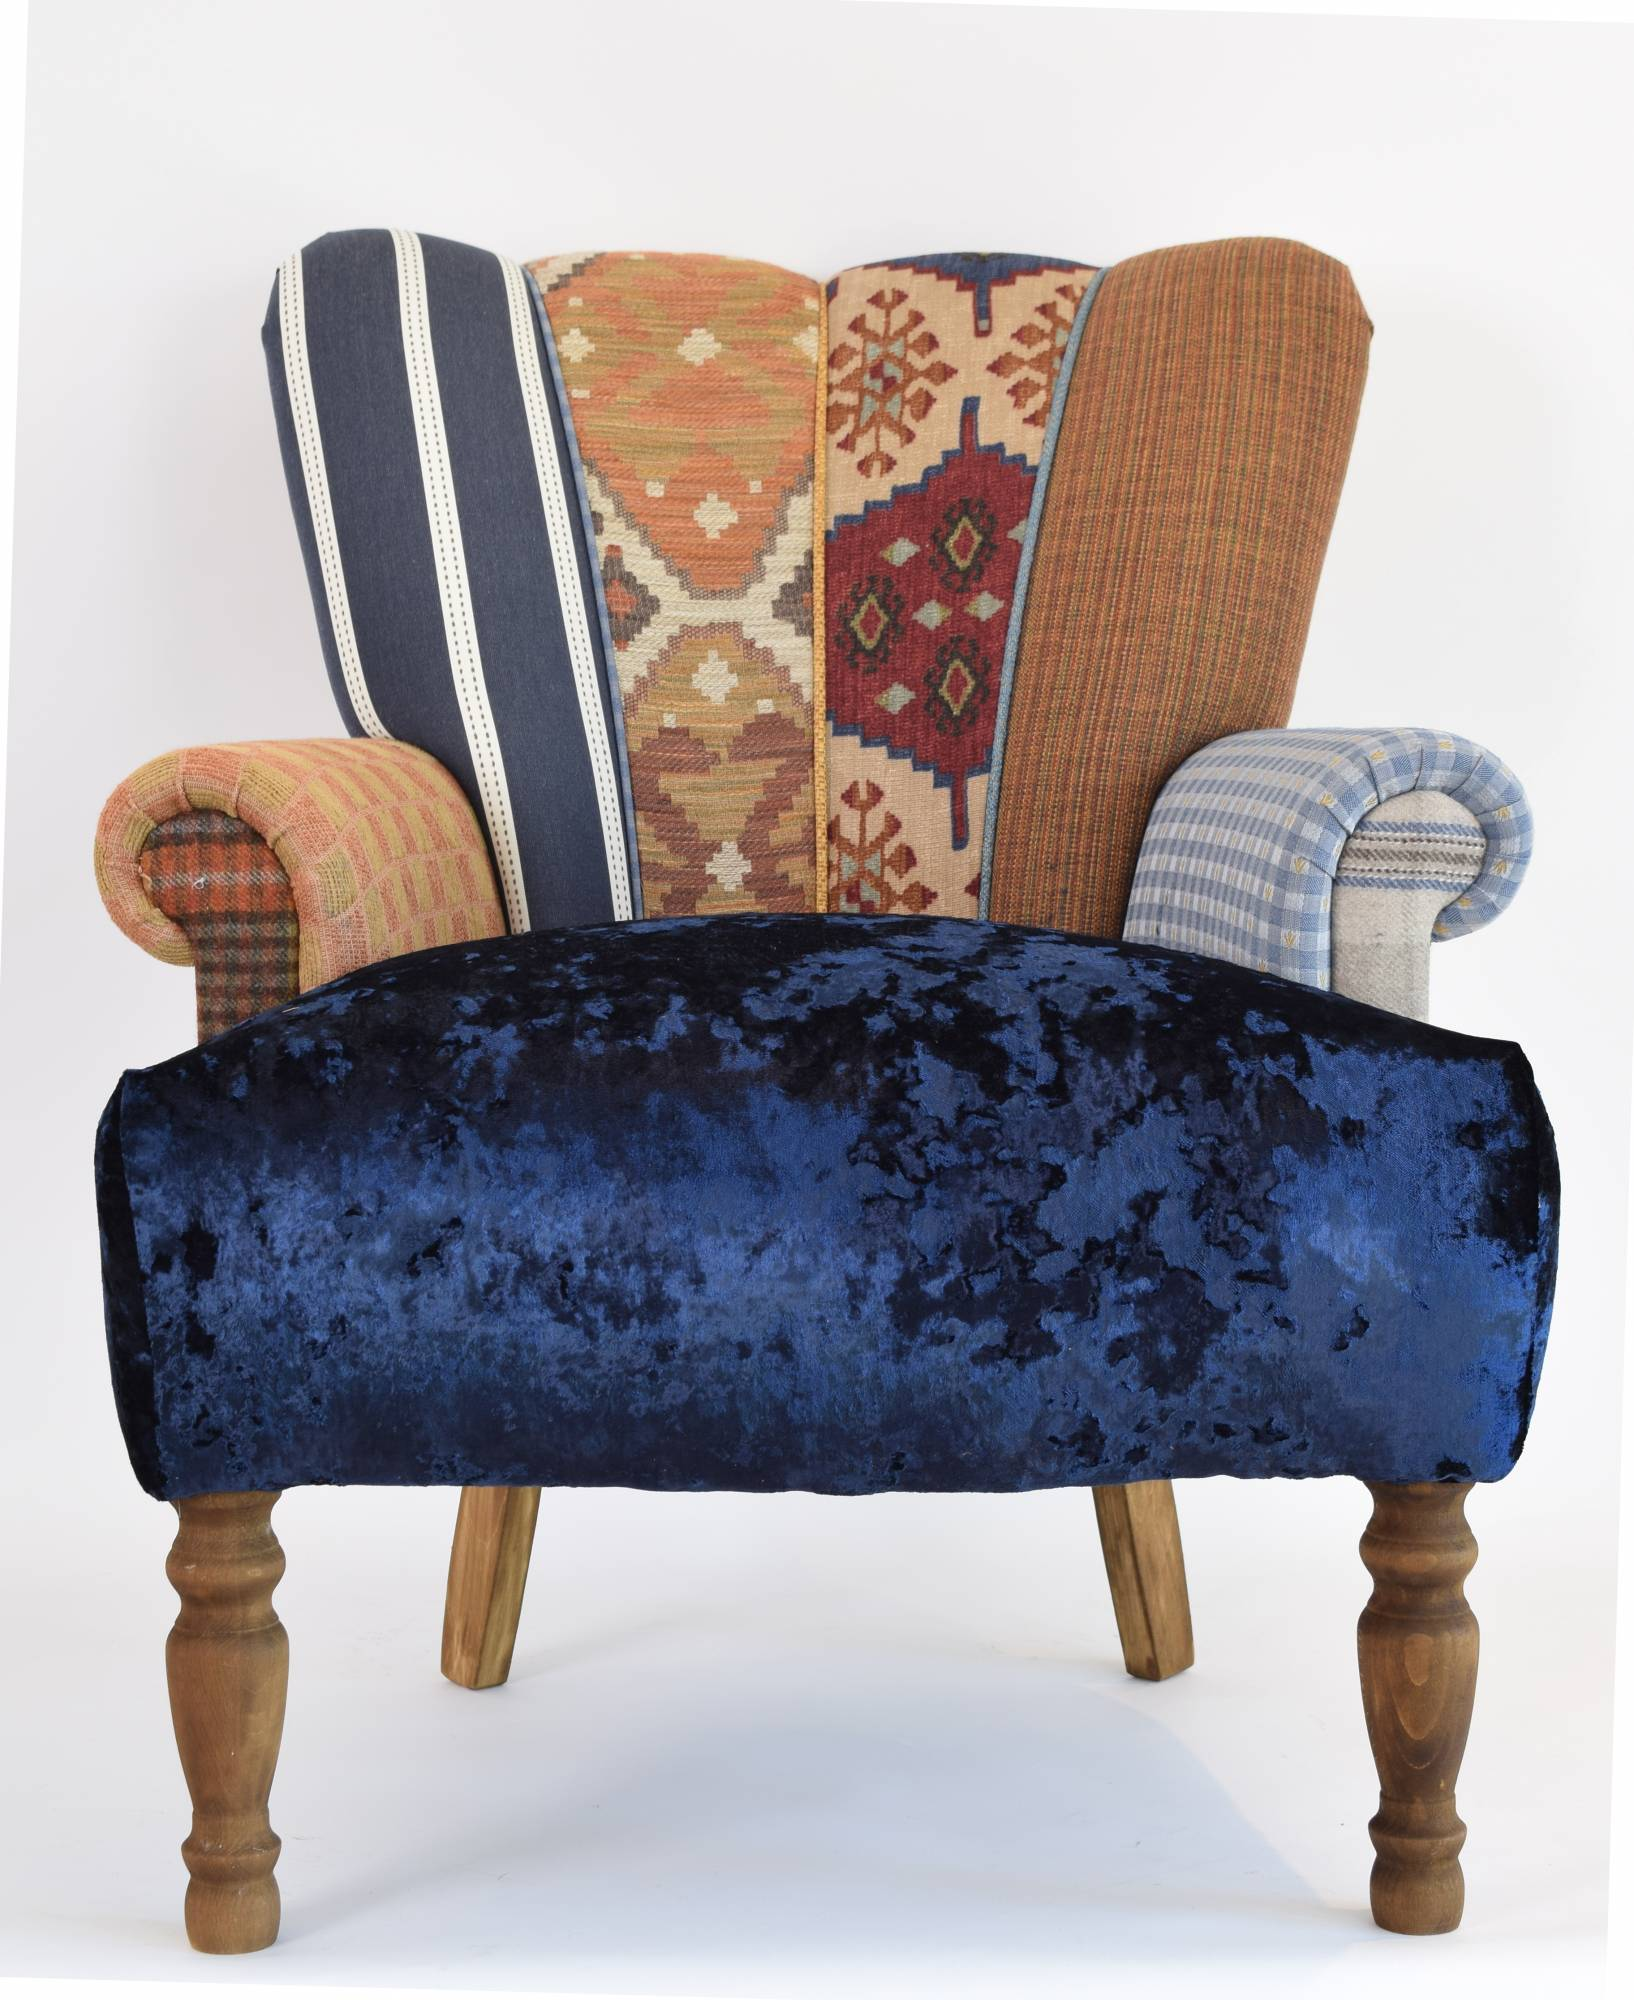 Our furniture quirky harlequin chair